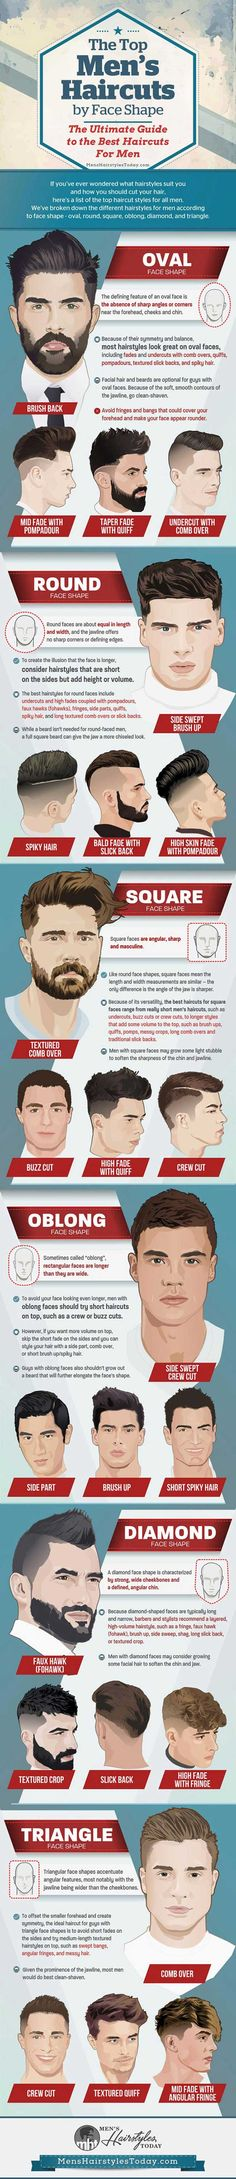 Best Men's Hairstyles Based On Face Shape